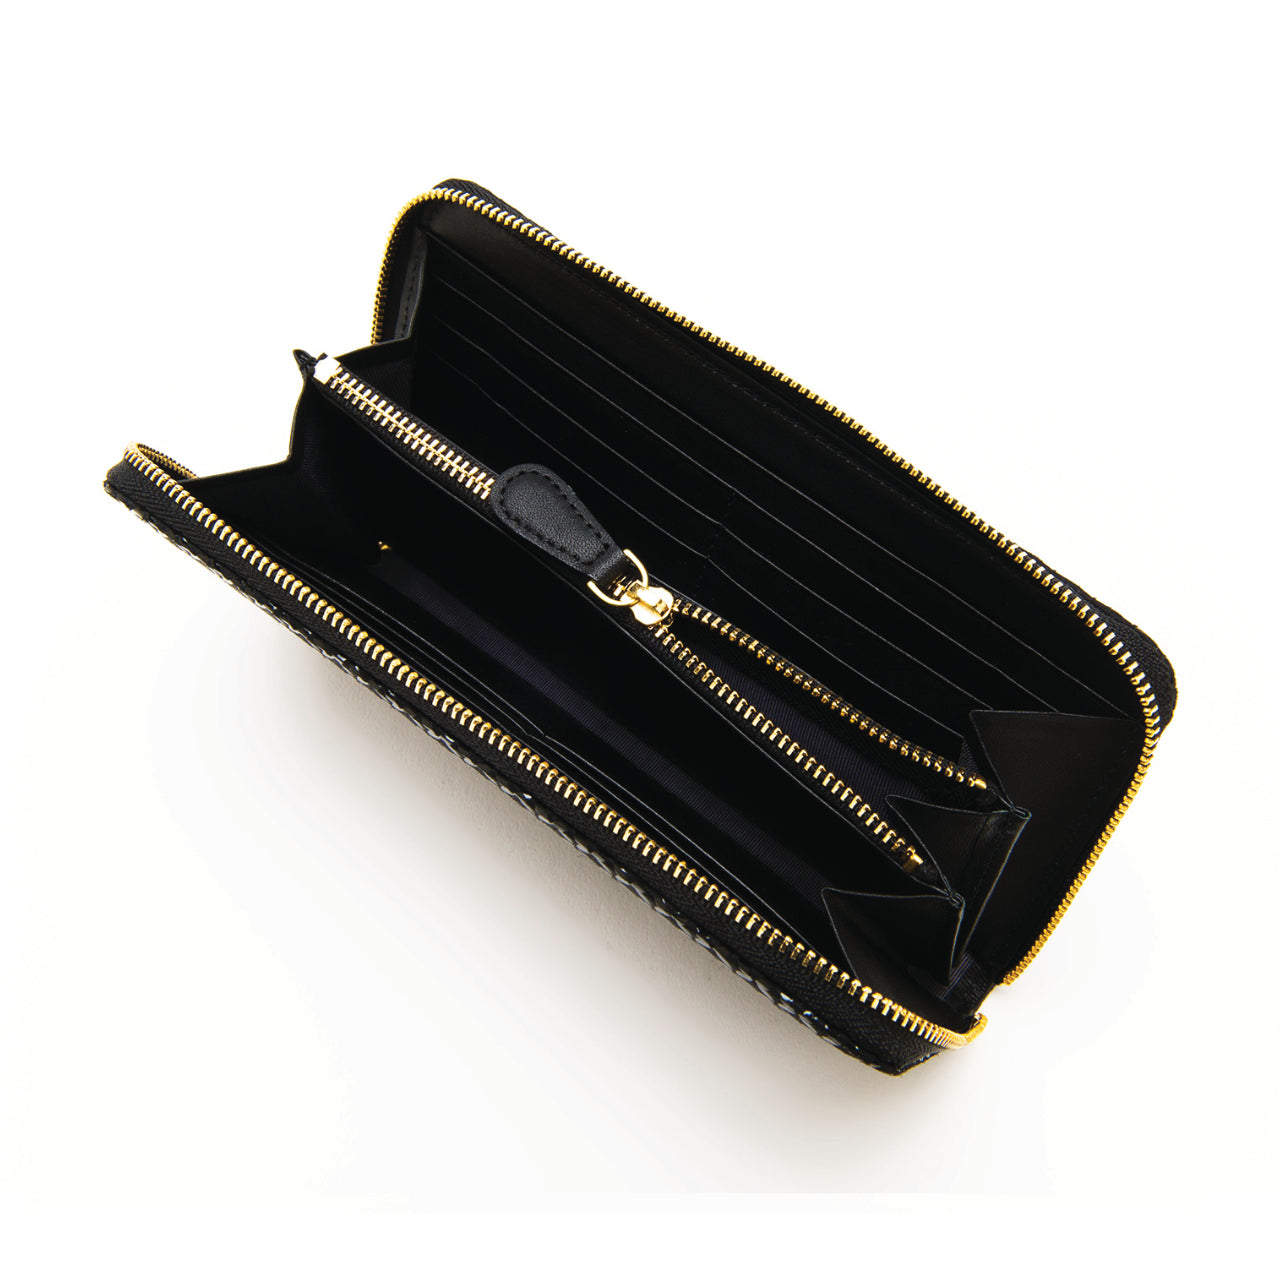 INDEN ZIPPED LONG WALLET Black x Black Seven Treasures